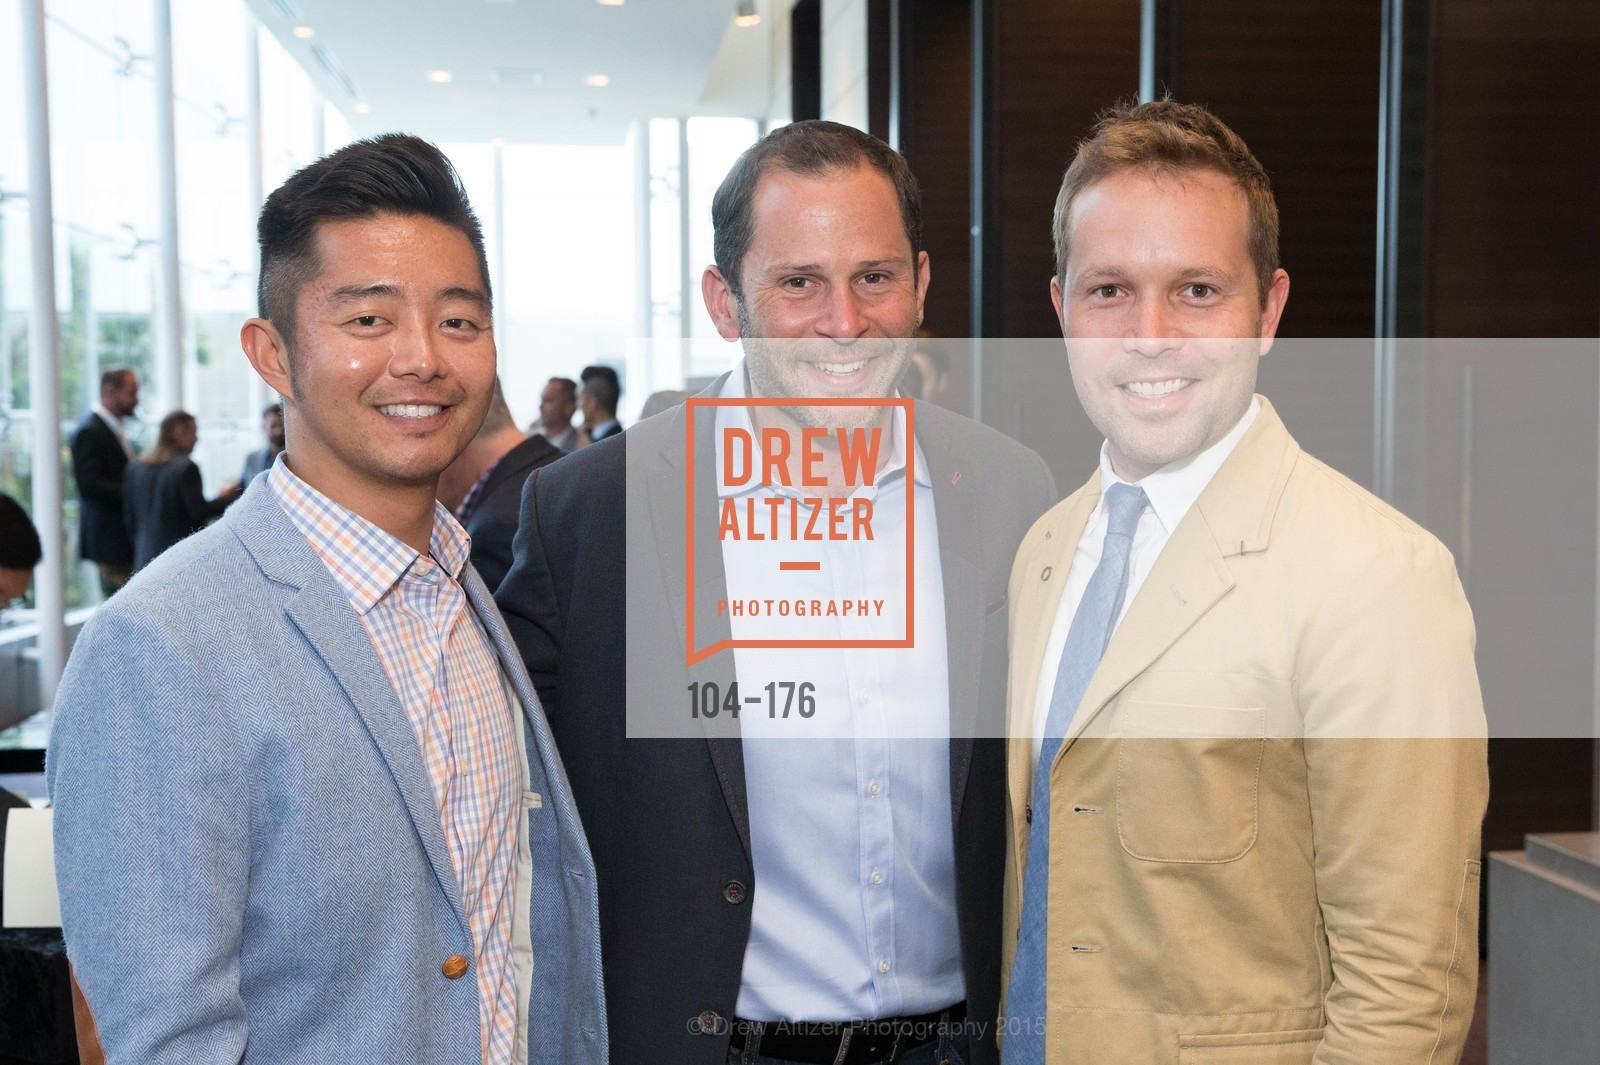 Jonny Mah, Dorian Kendal, Garrett Hunt, VIP Pride Celebration 2015, St. Regis, June 18th, 2015,Drew Altizer, Drew Altizer Photography, full-service agency, private events, San Francisco photographer, photographer california